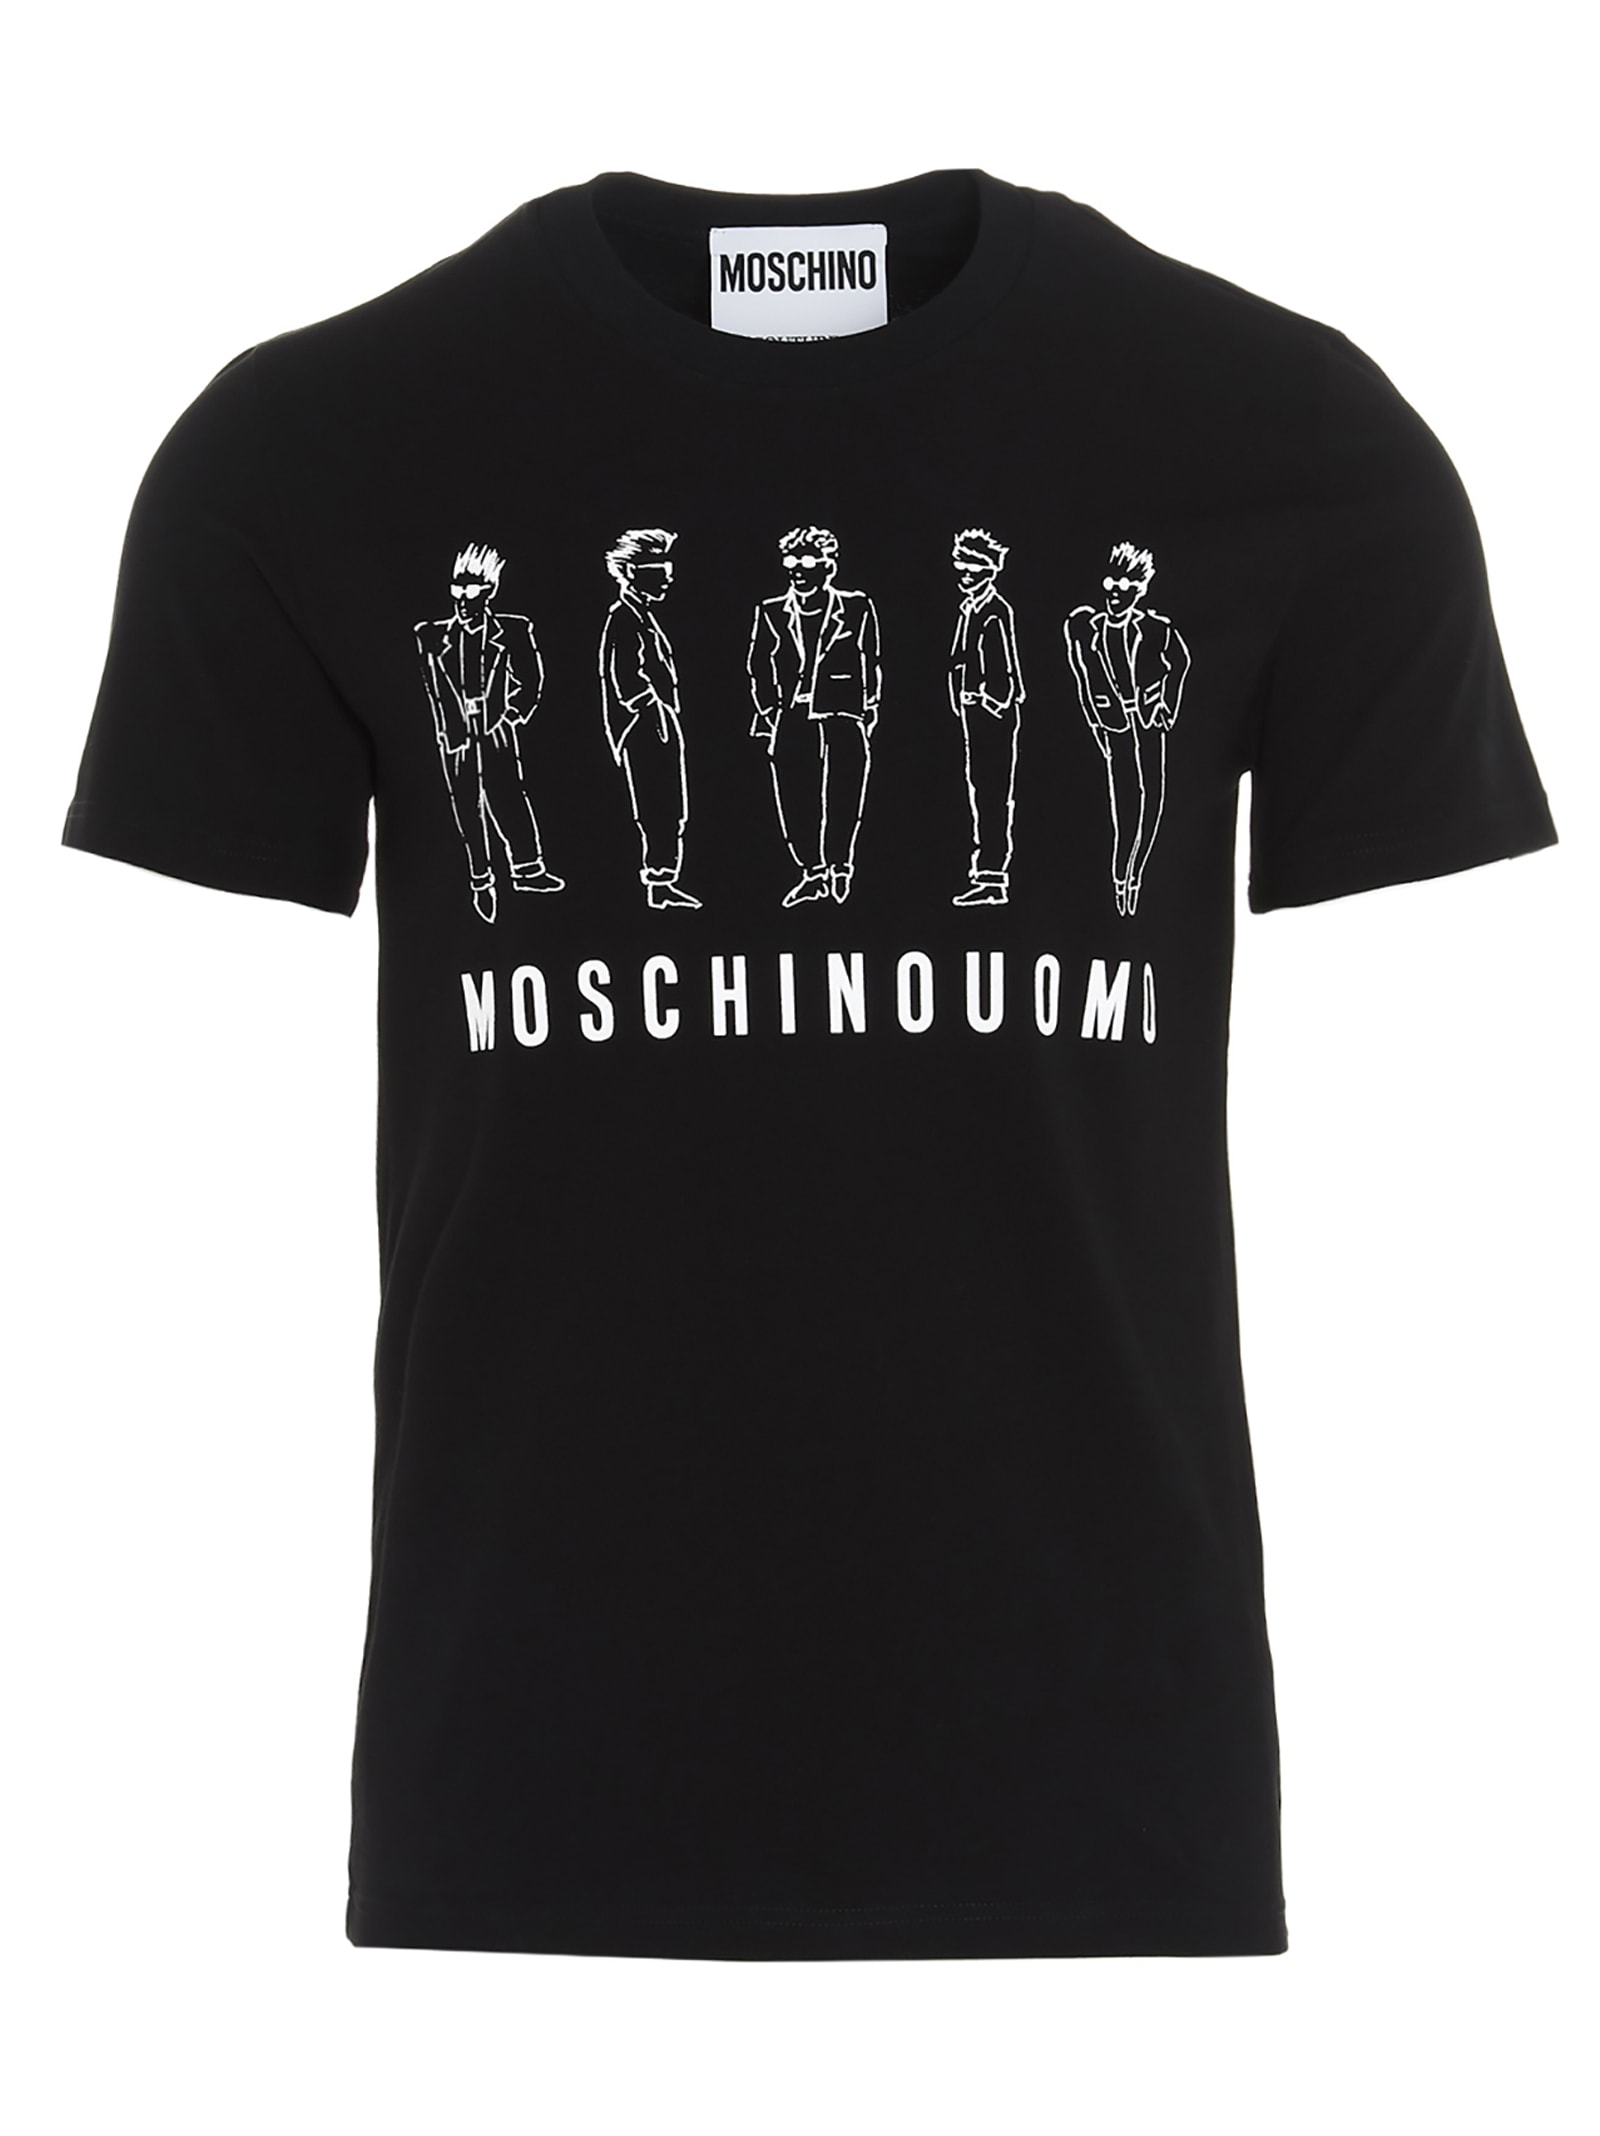 Moschino archive Logo T-shirt